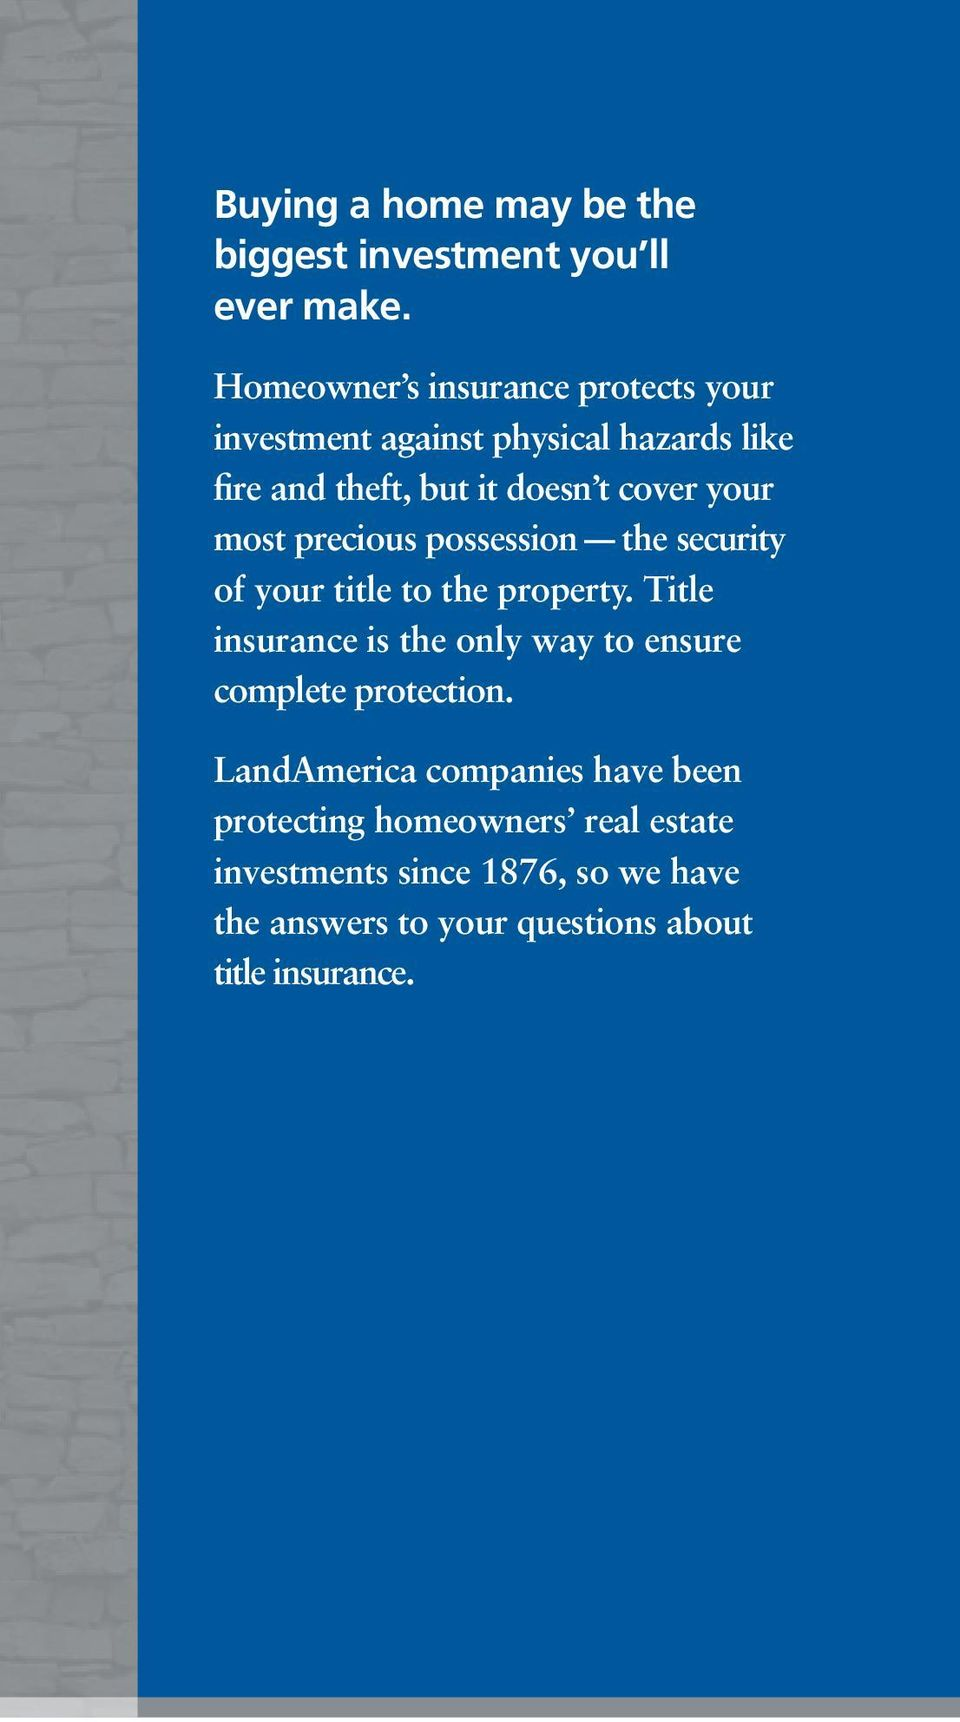 your most precious possession the security of your title to the property.